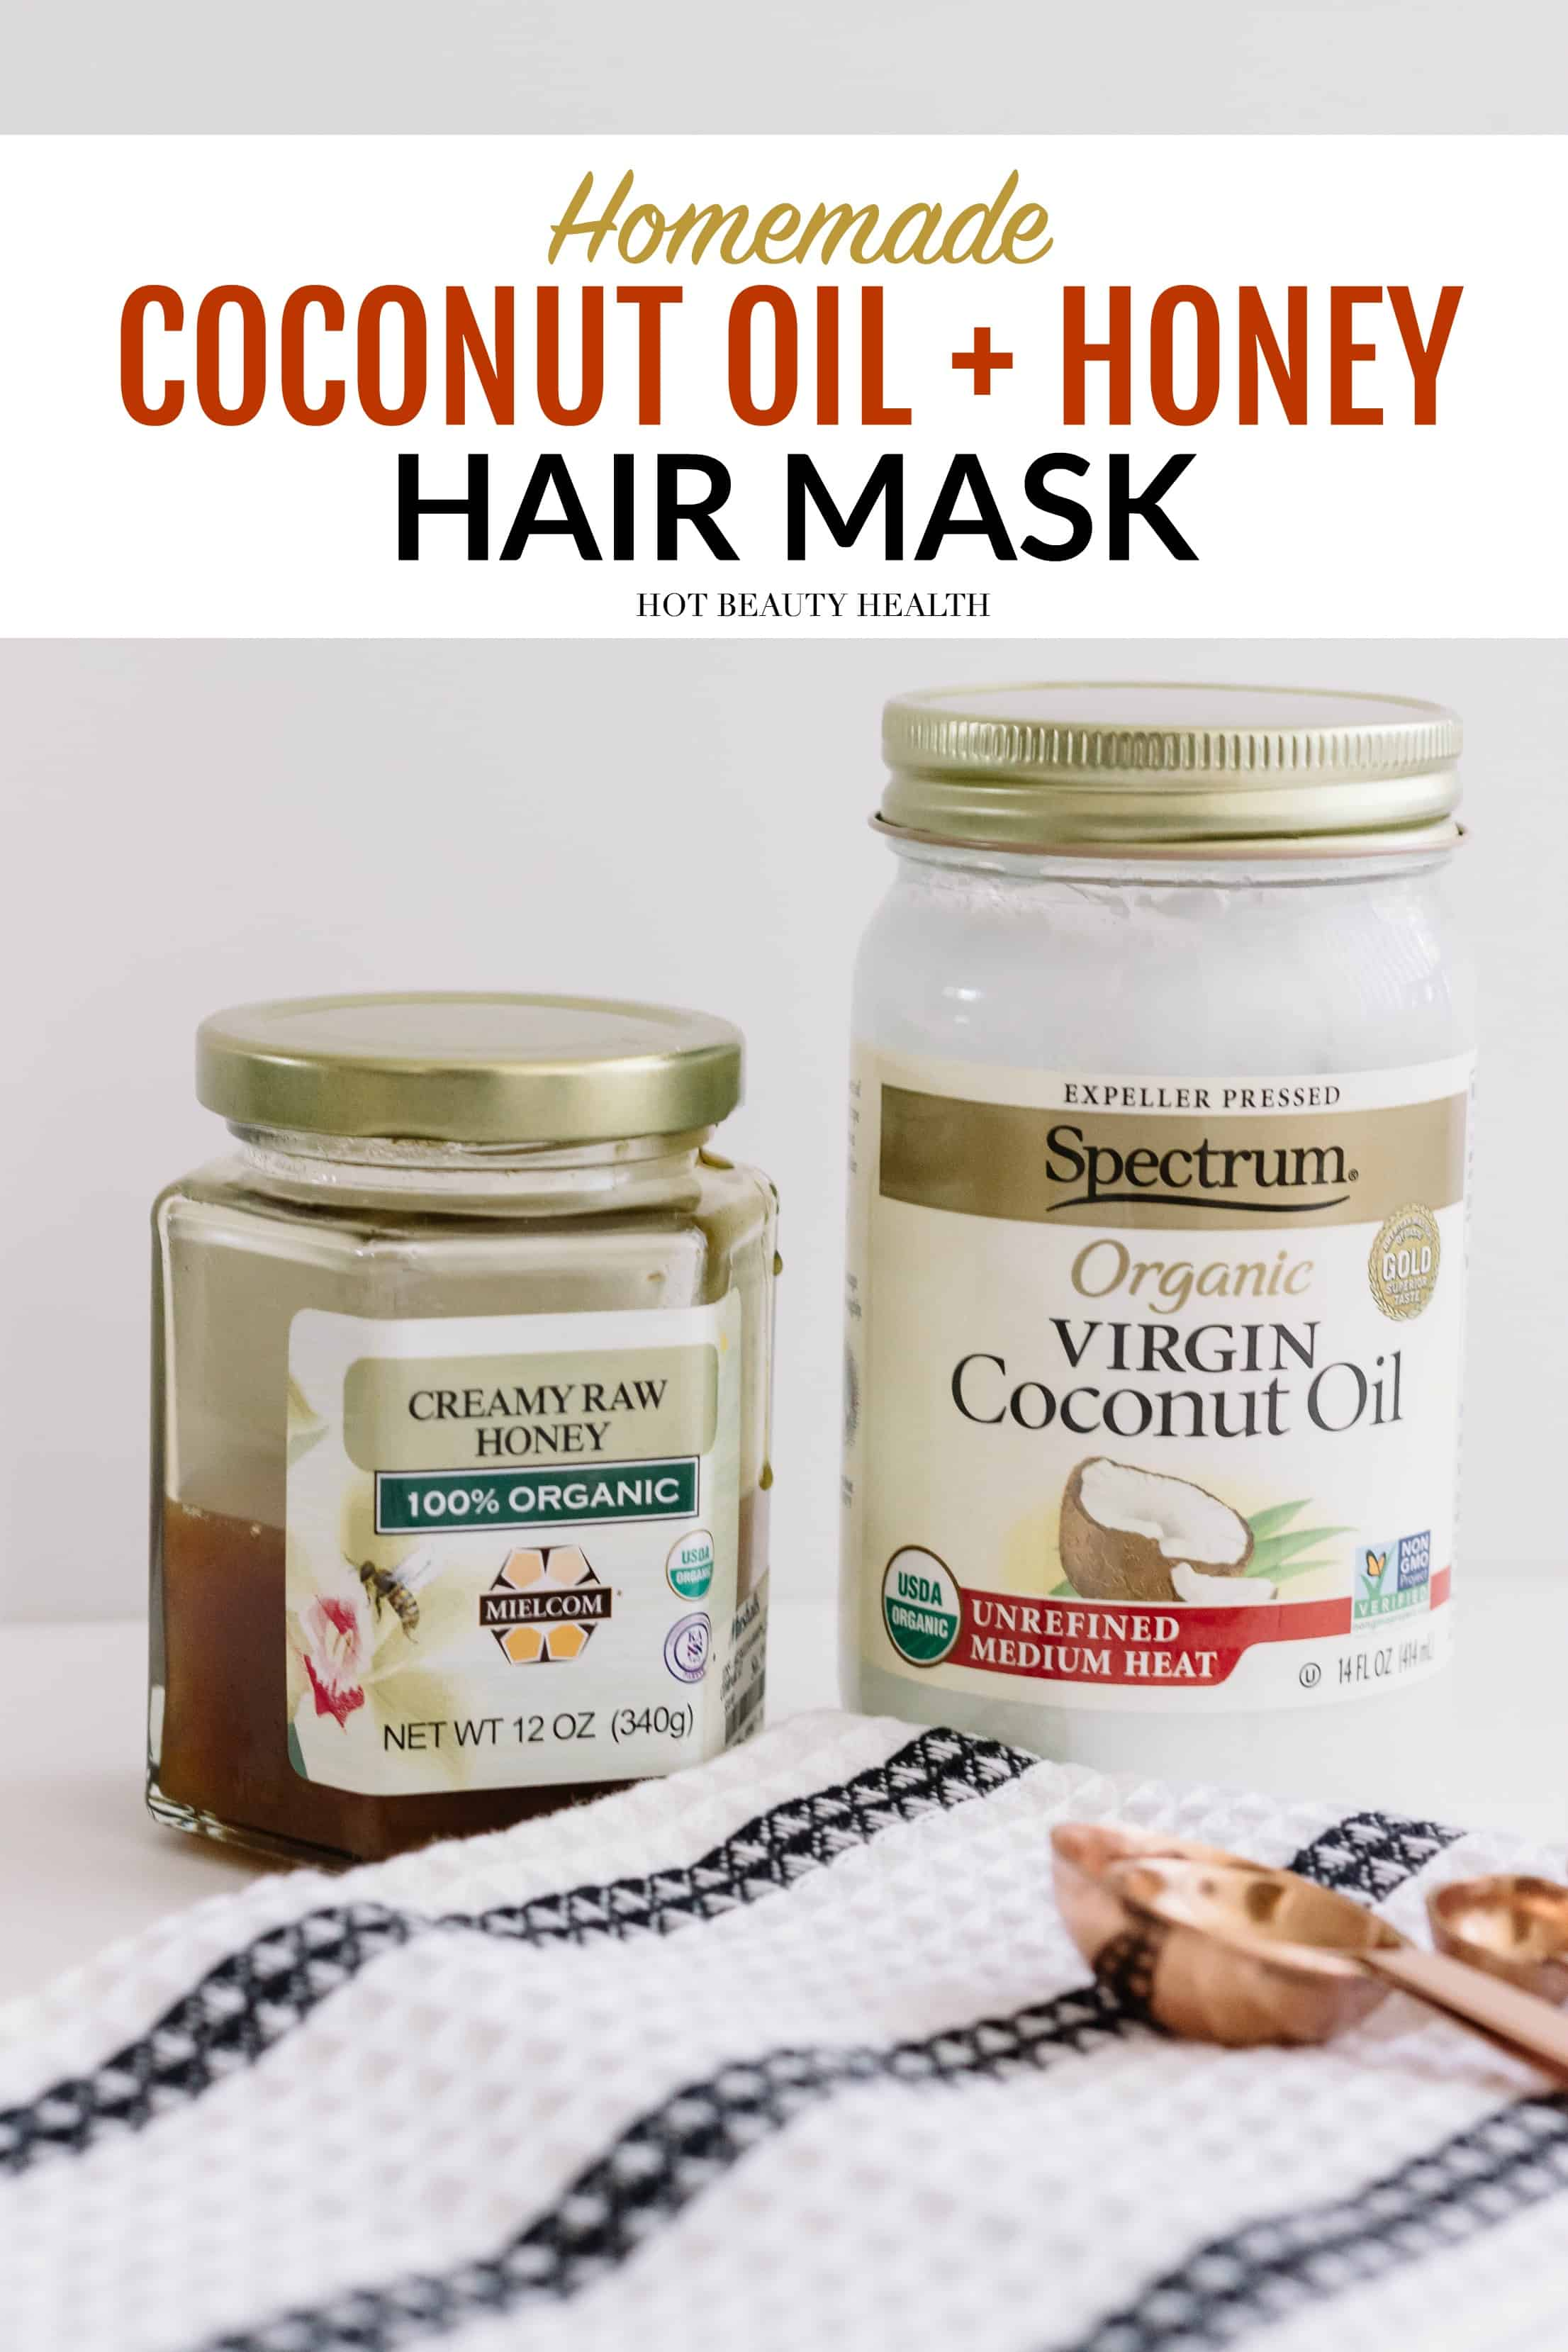 Coconut Oil And Honey Hair Mask Homemade Hot Beauty Health